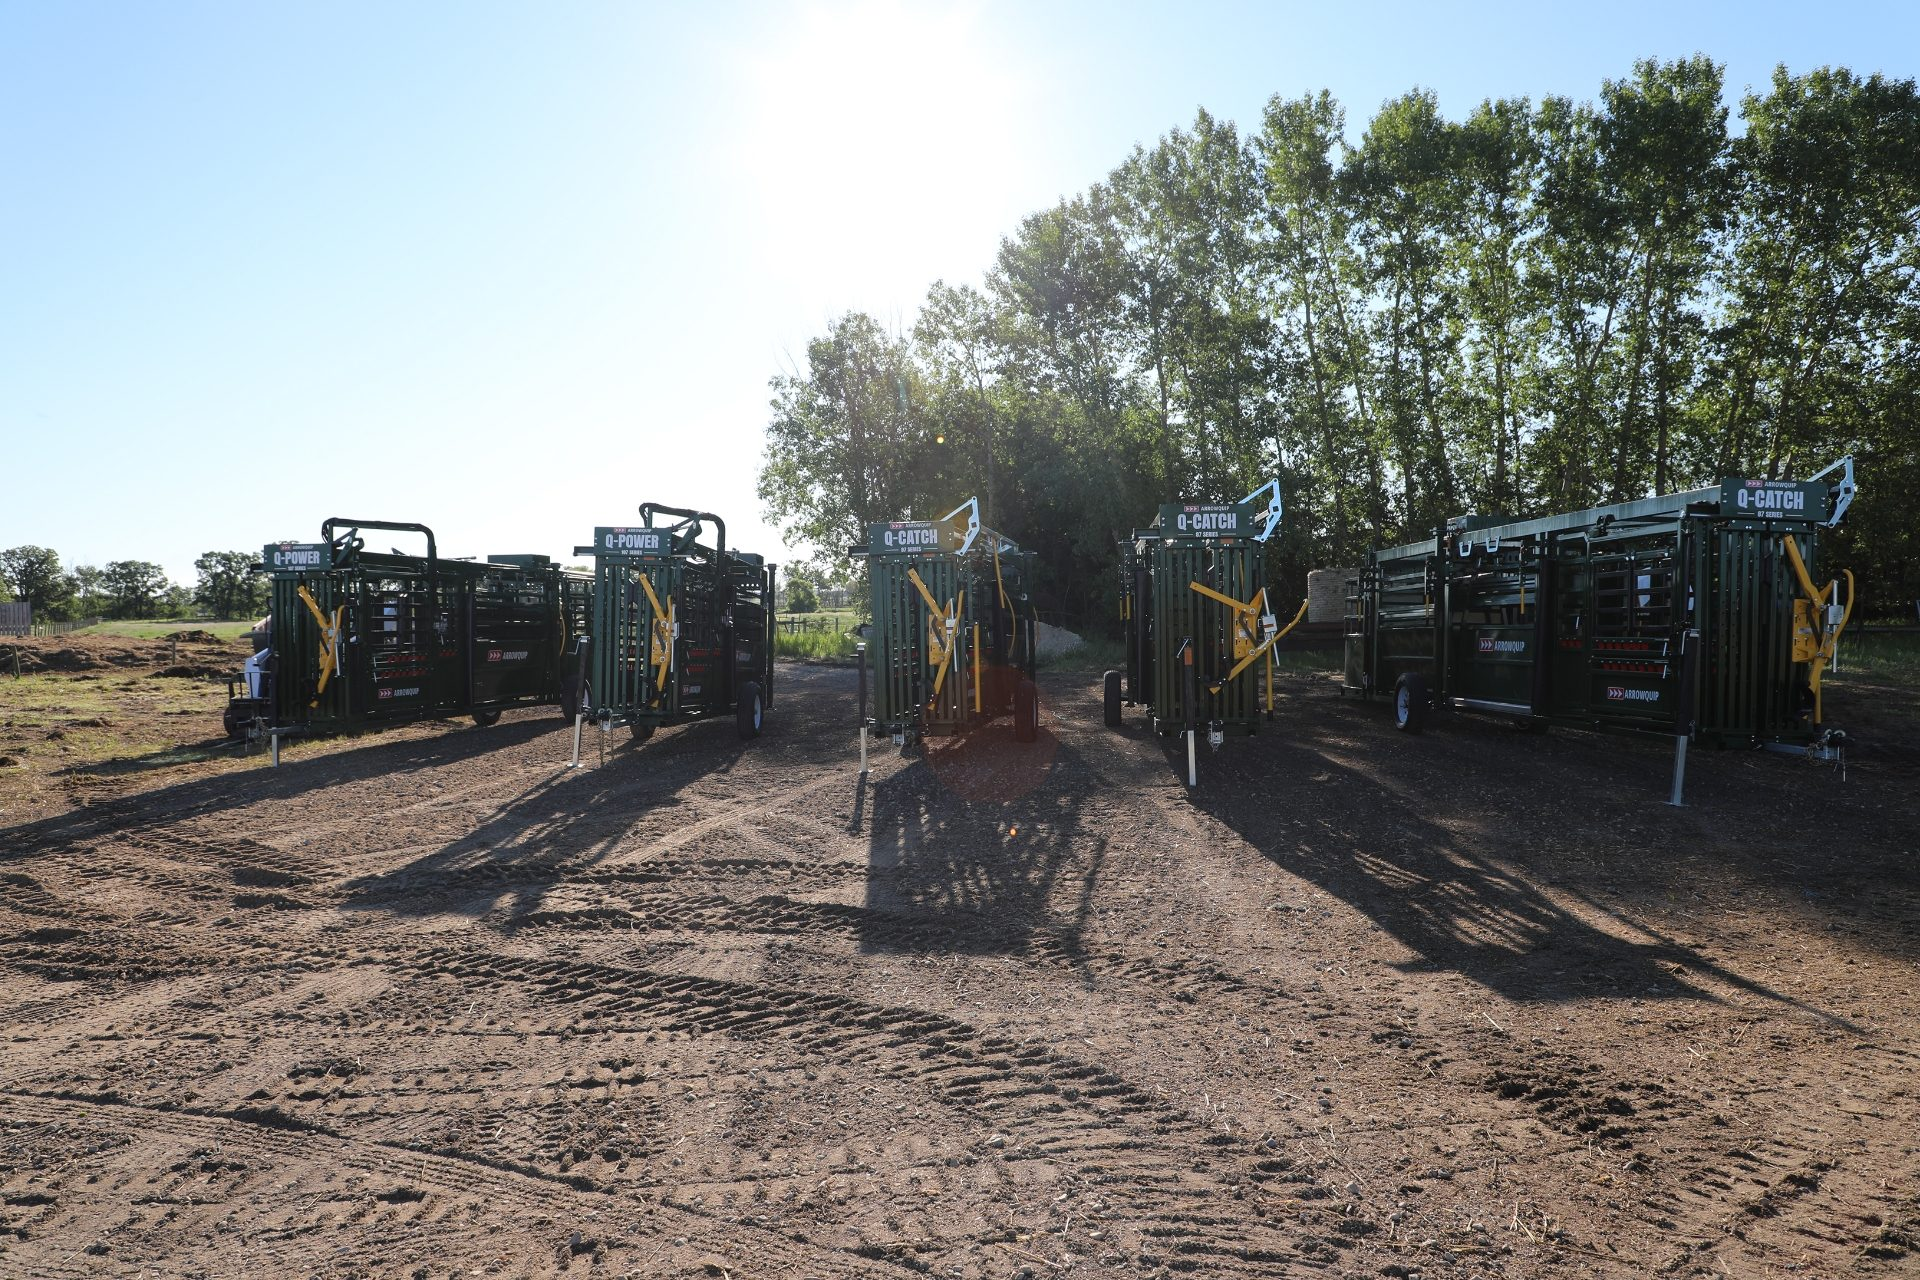 Lineup of 700 Series portable cattle handling equipment models by Arrowquip